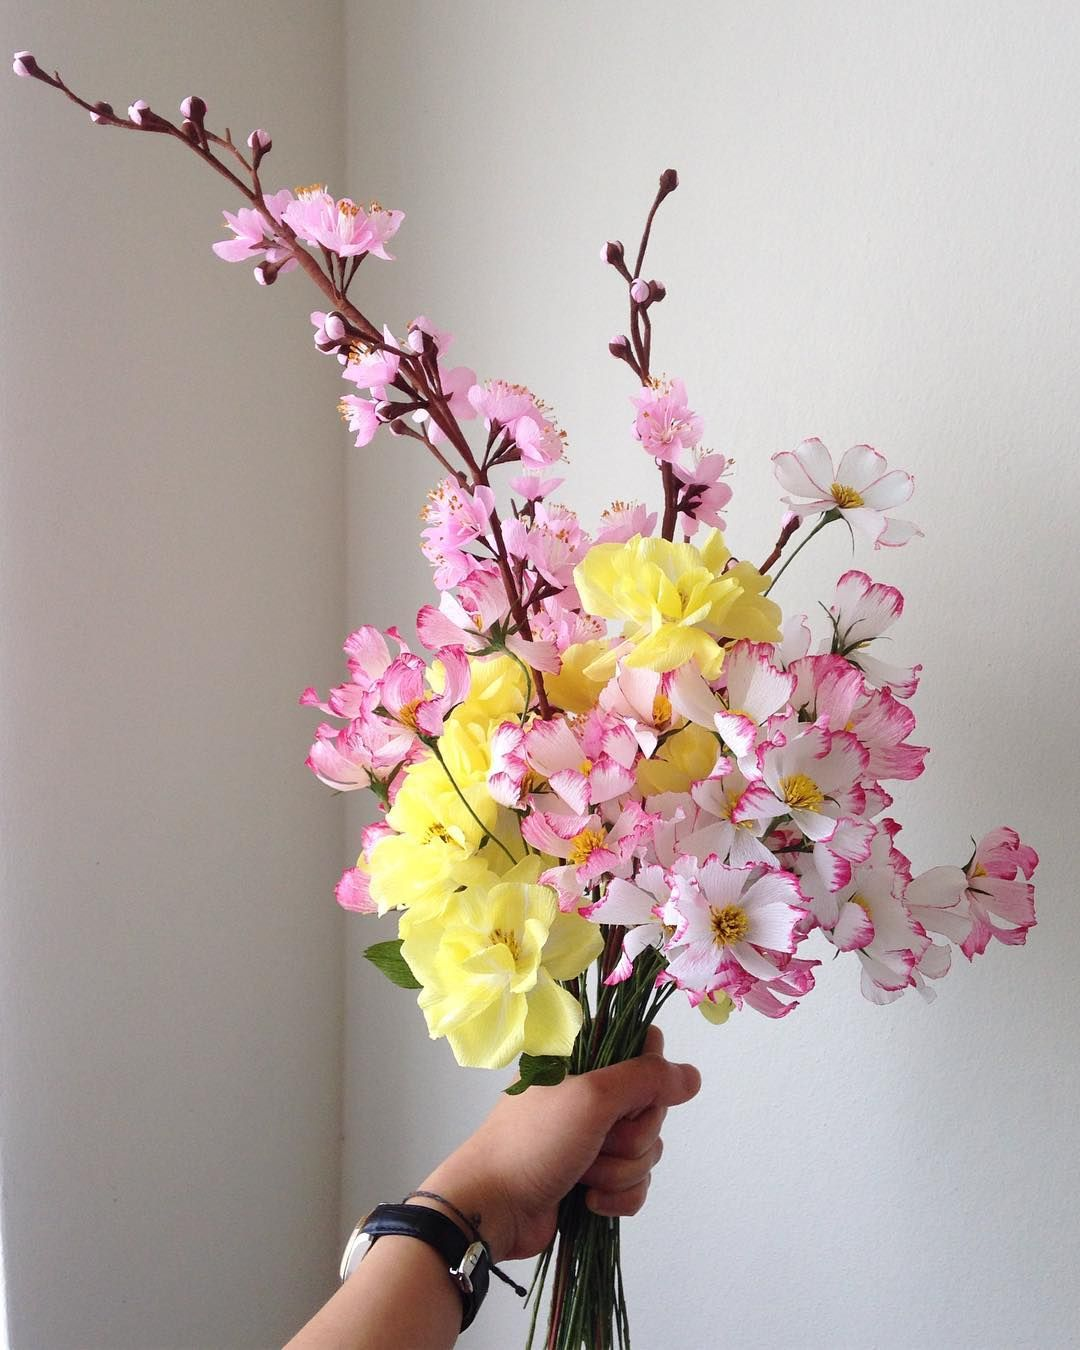 Blossom wild rose u cosmos in a yellowpink palette have a